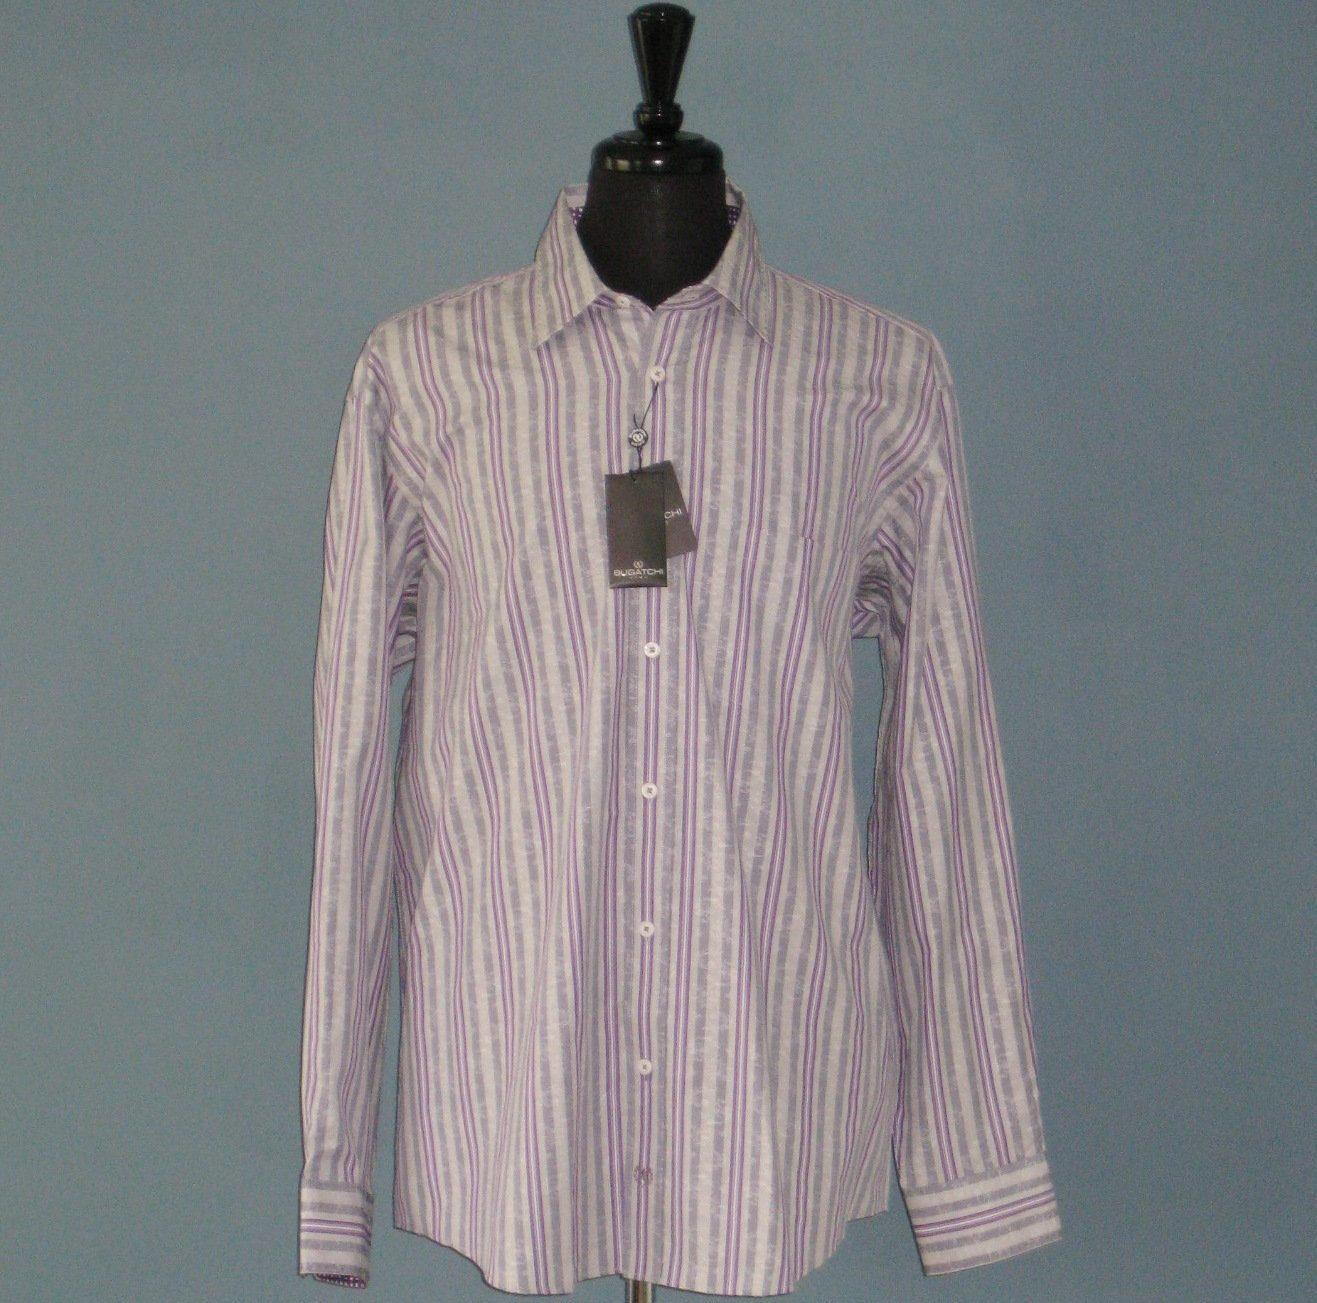 NWT Bugatchi Uomo Violet Striped 100% Cotton Long Sleeve Shirt - XL